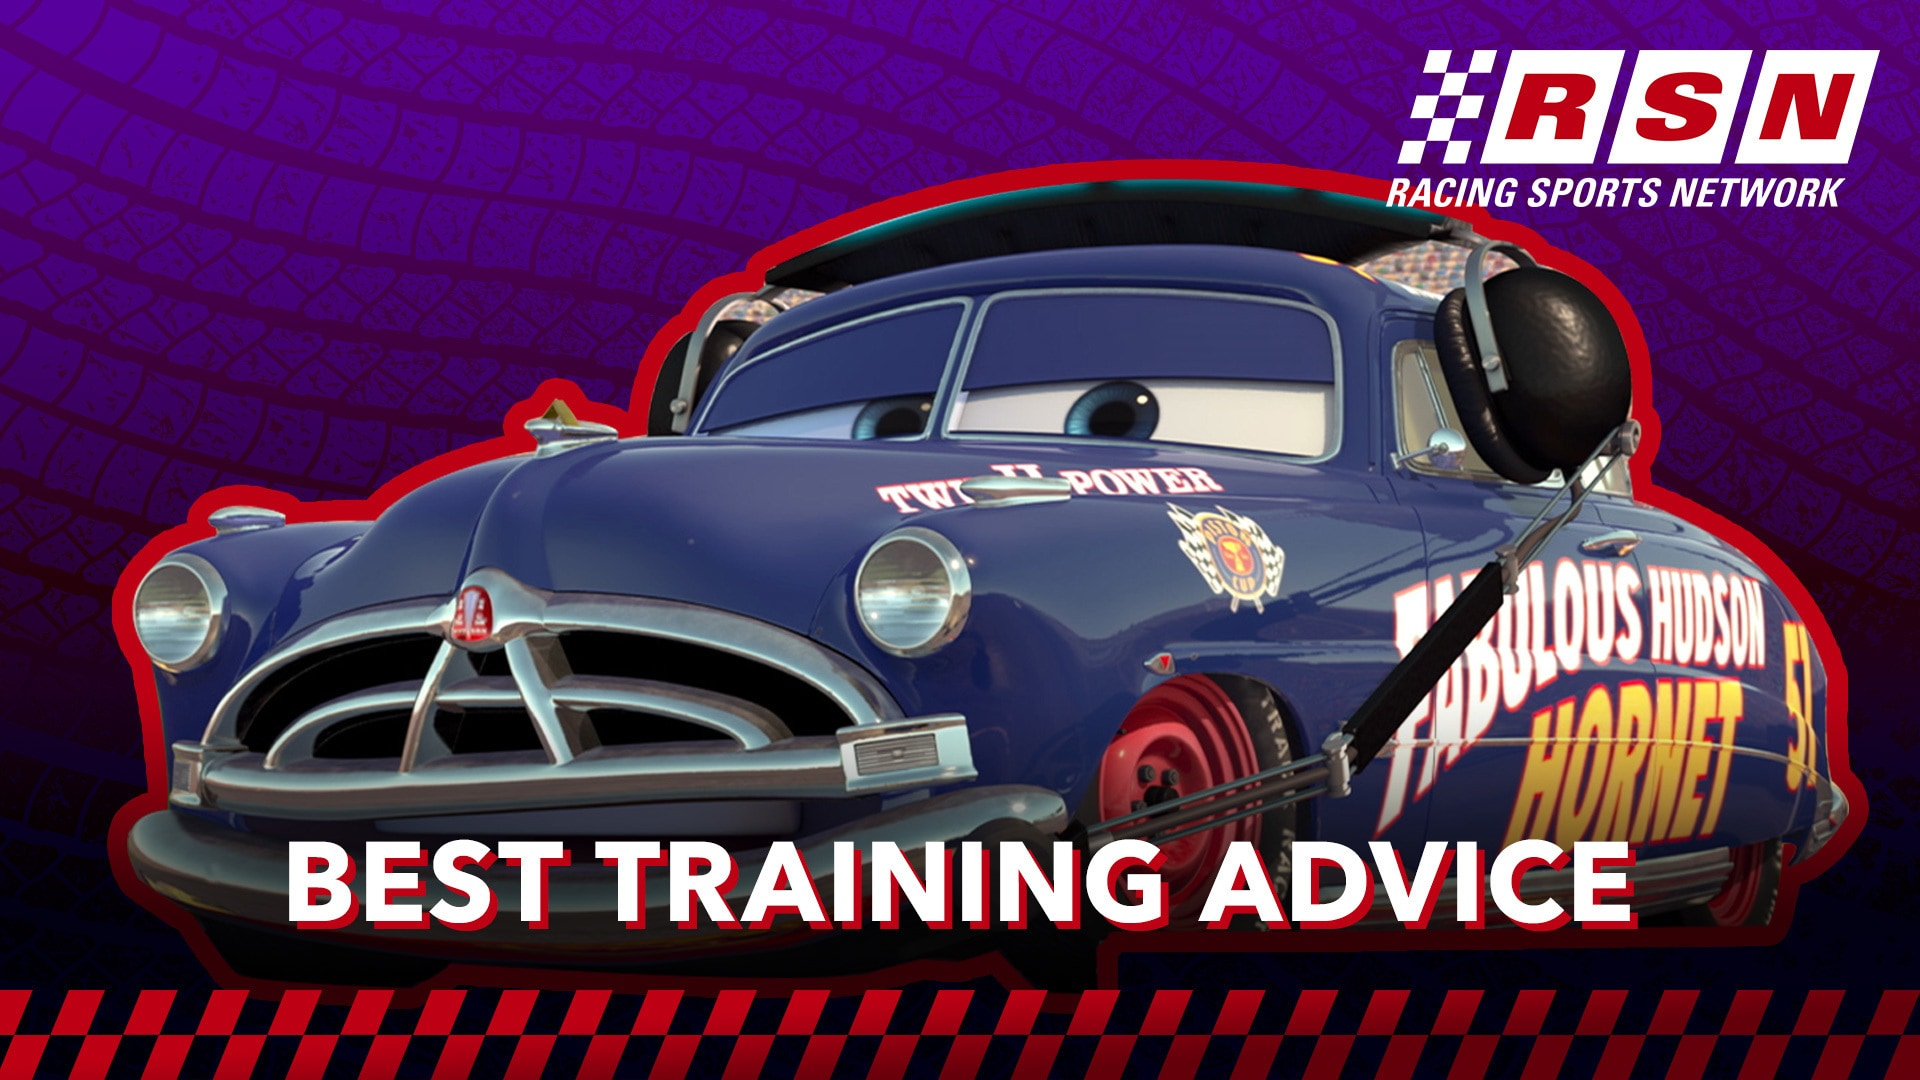 Best Racing & Training Advice in Cars | Racing Sports Network by Disney•Pixar Cars